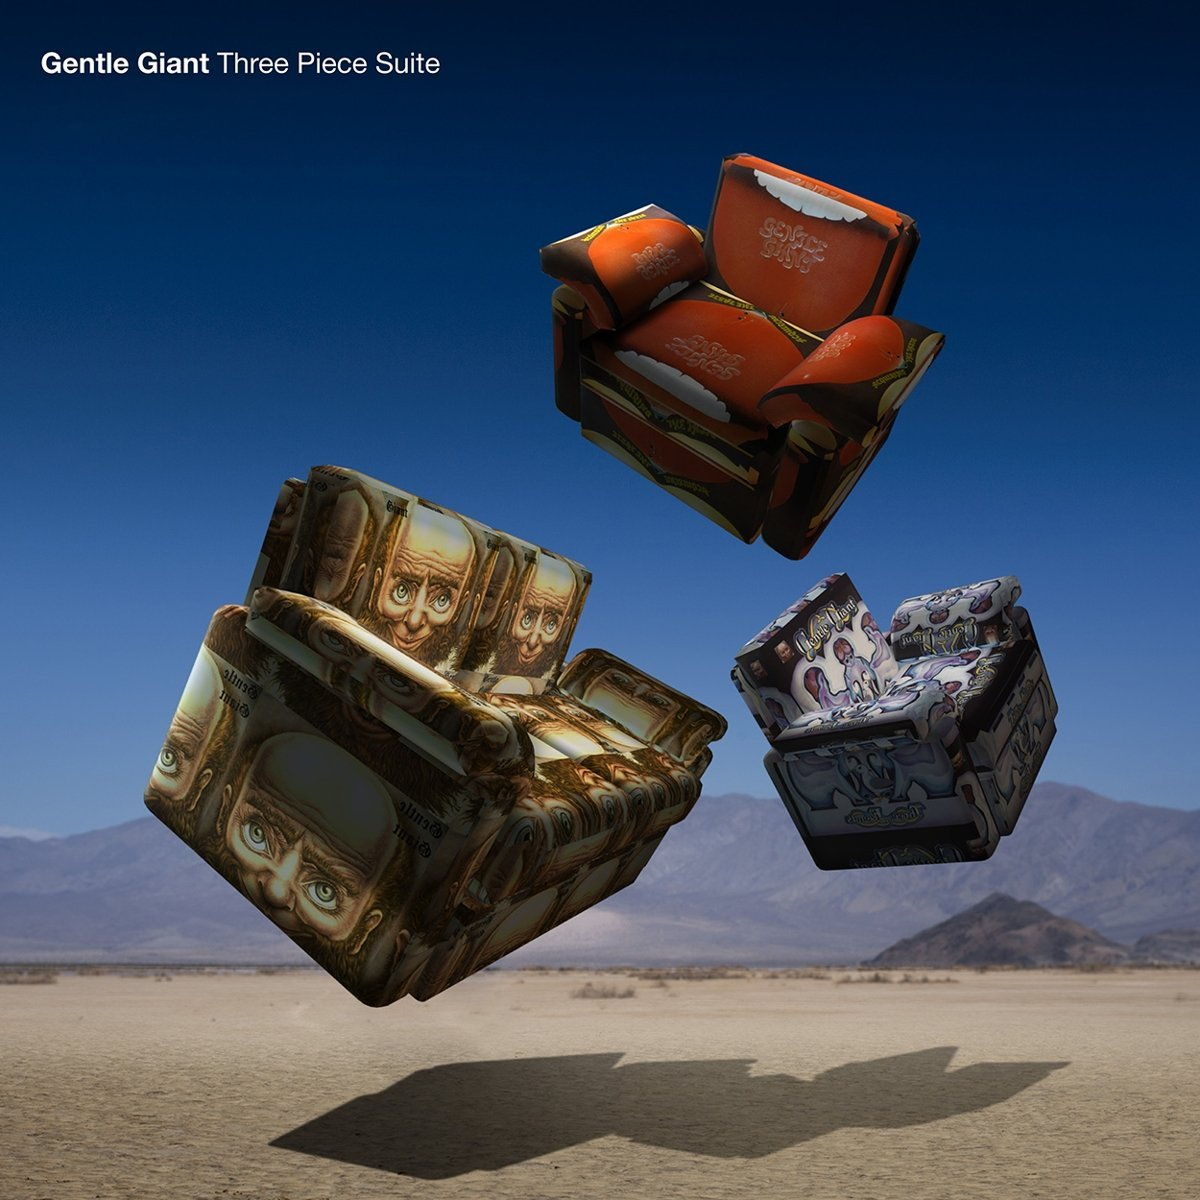 "Gentle Giant ""Three Piece Suite (Steven Wilson Mix)"" release date September  29th 2017 UK Prog Art Rock new album A compilation of the first three  albums ..."